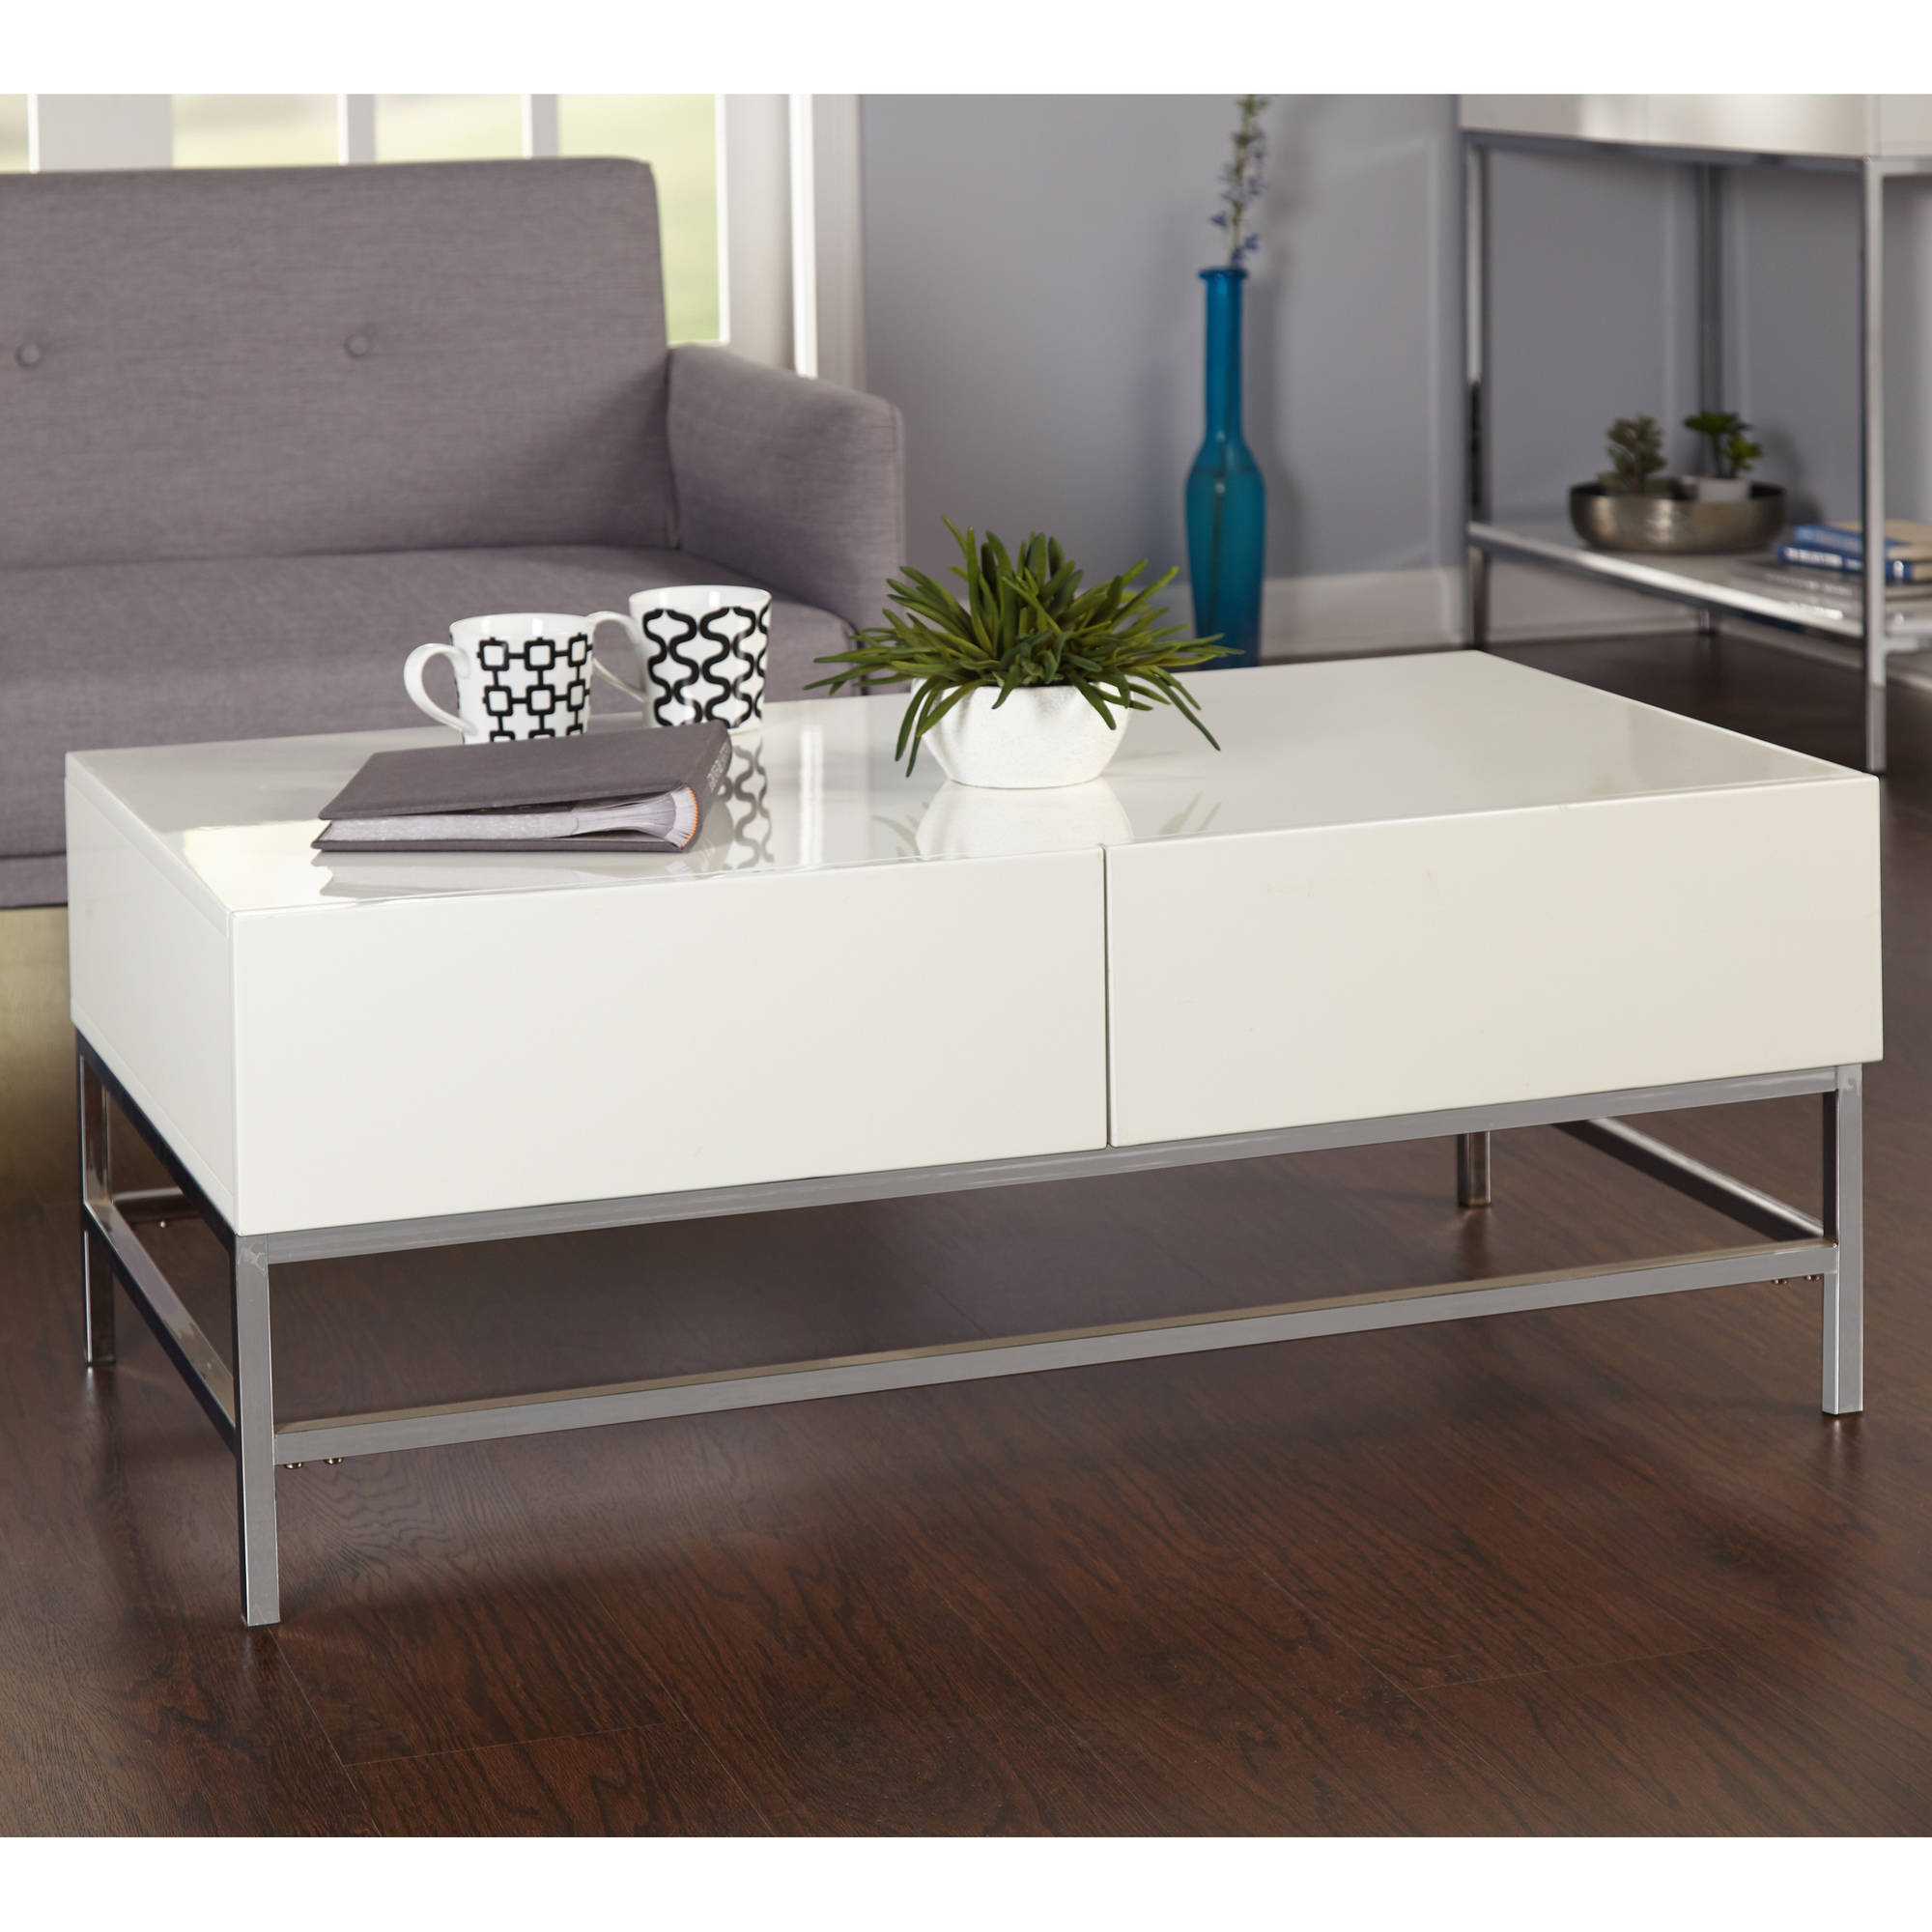 Lewis Occasional Coffee Table, White